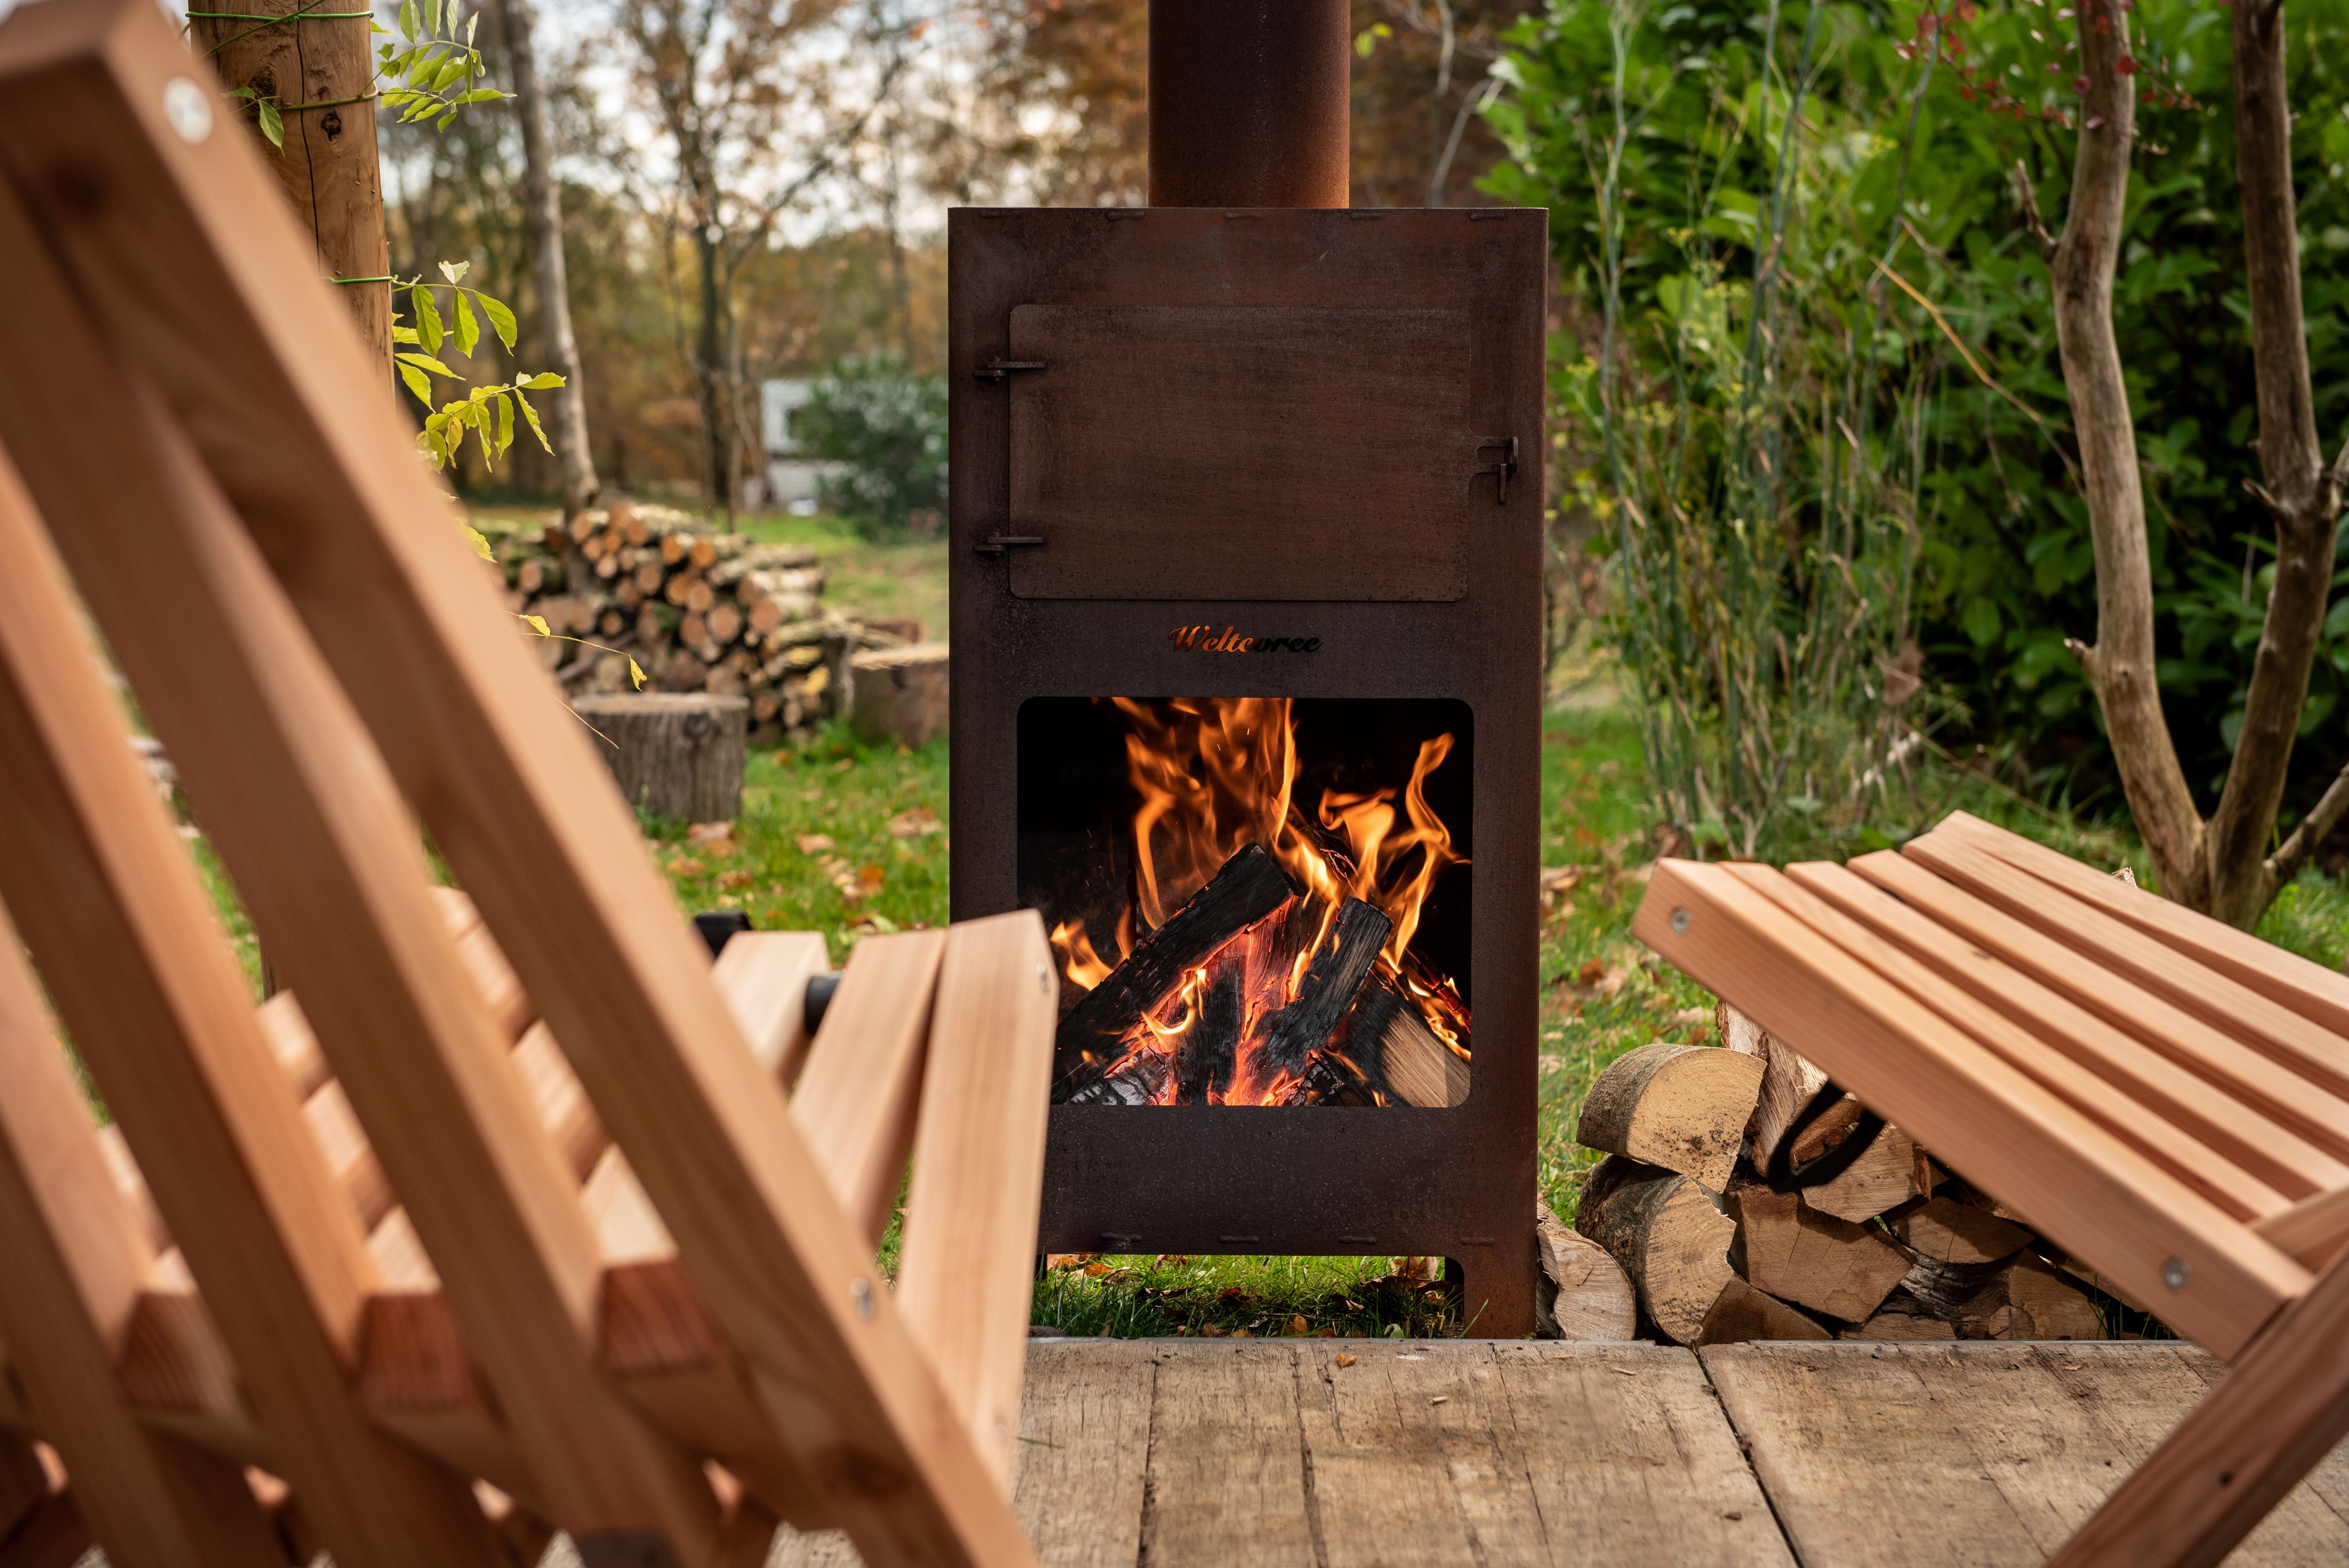 Outdooroven oven, fireplace and barbequegrill in one